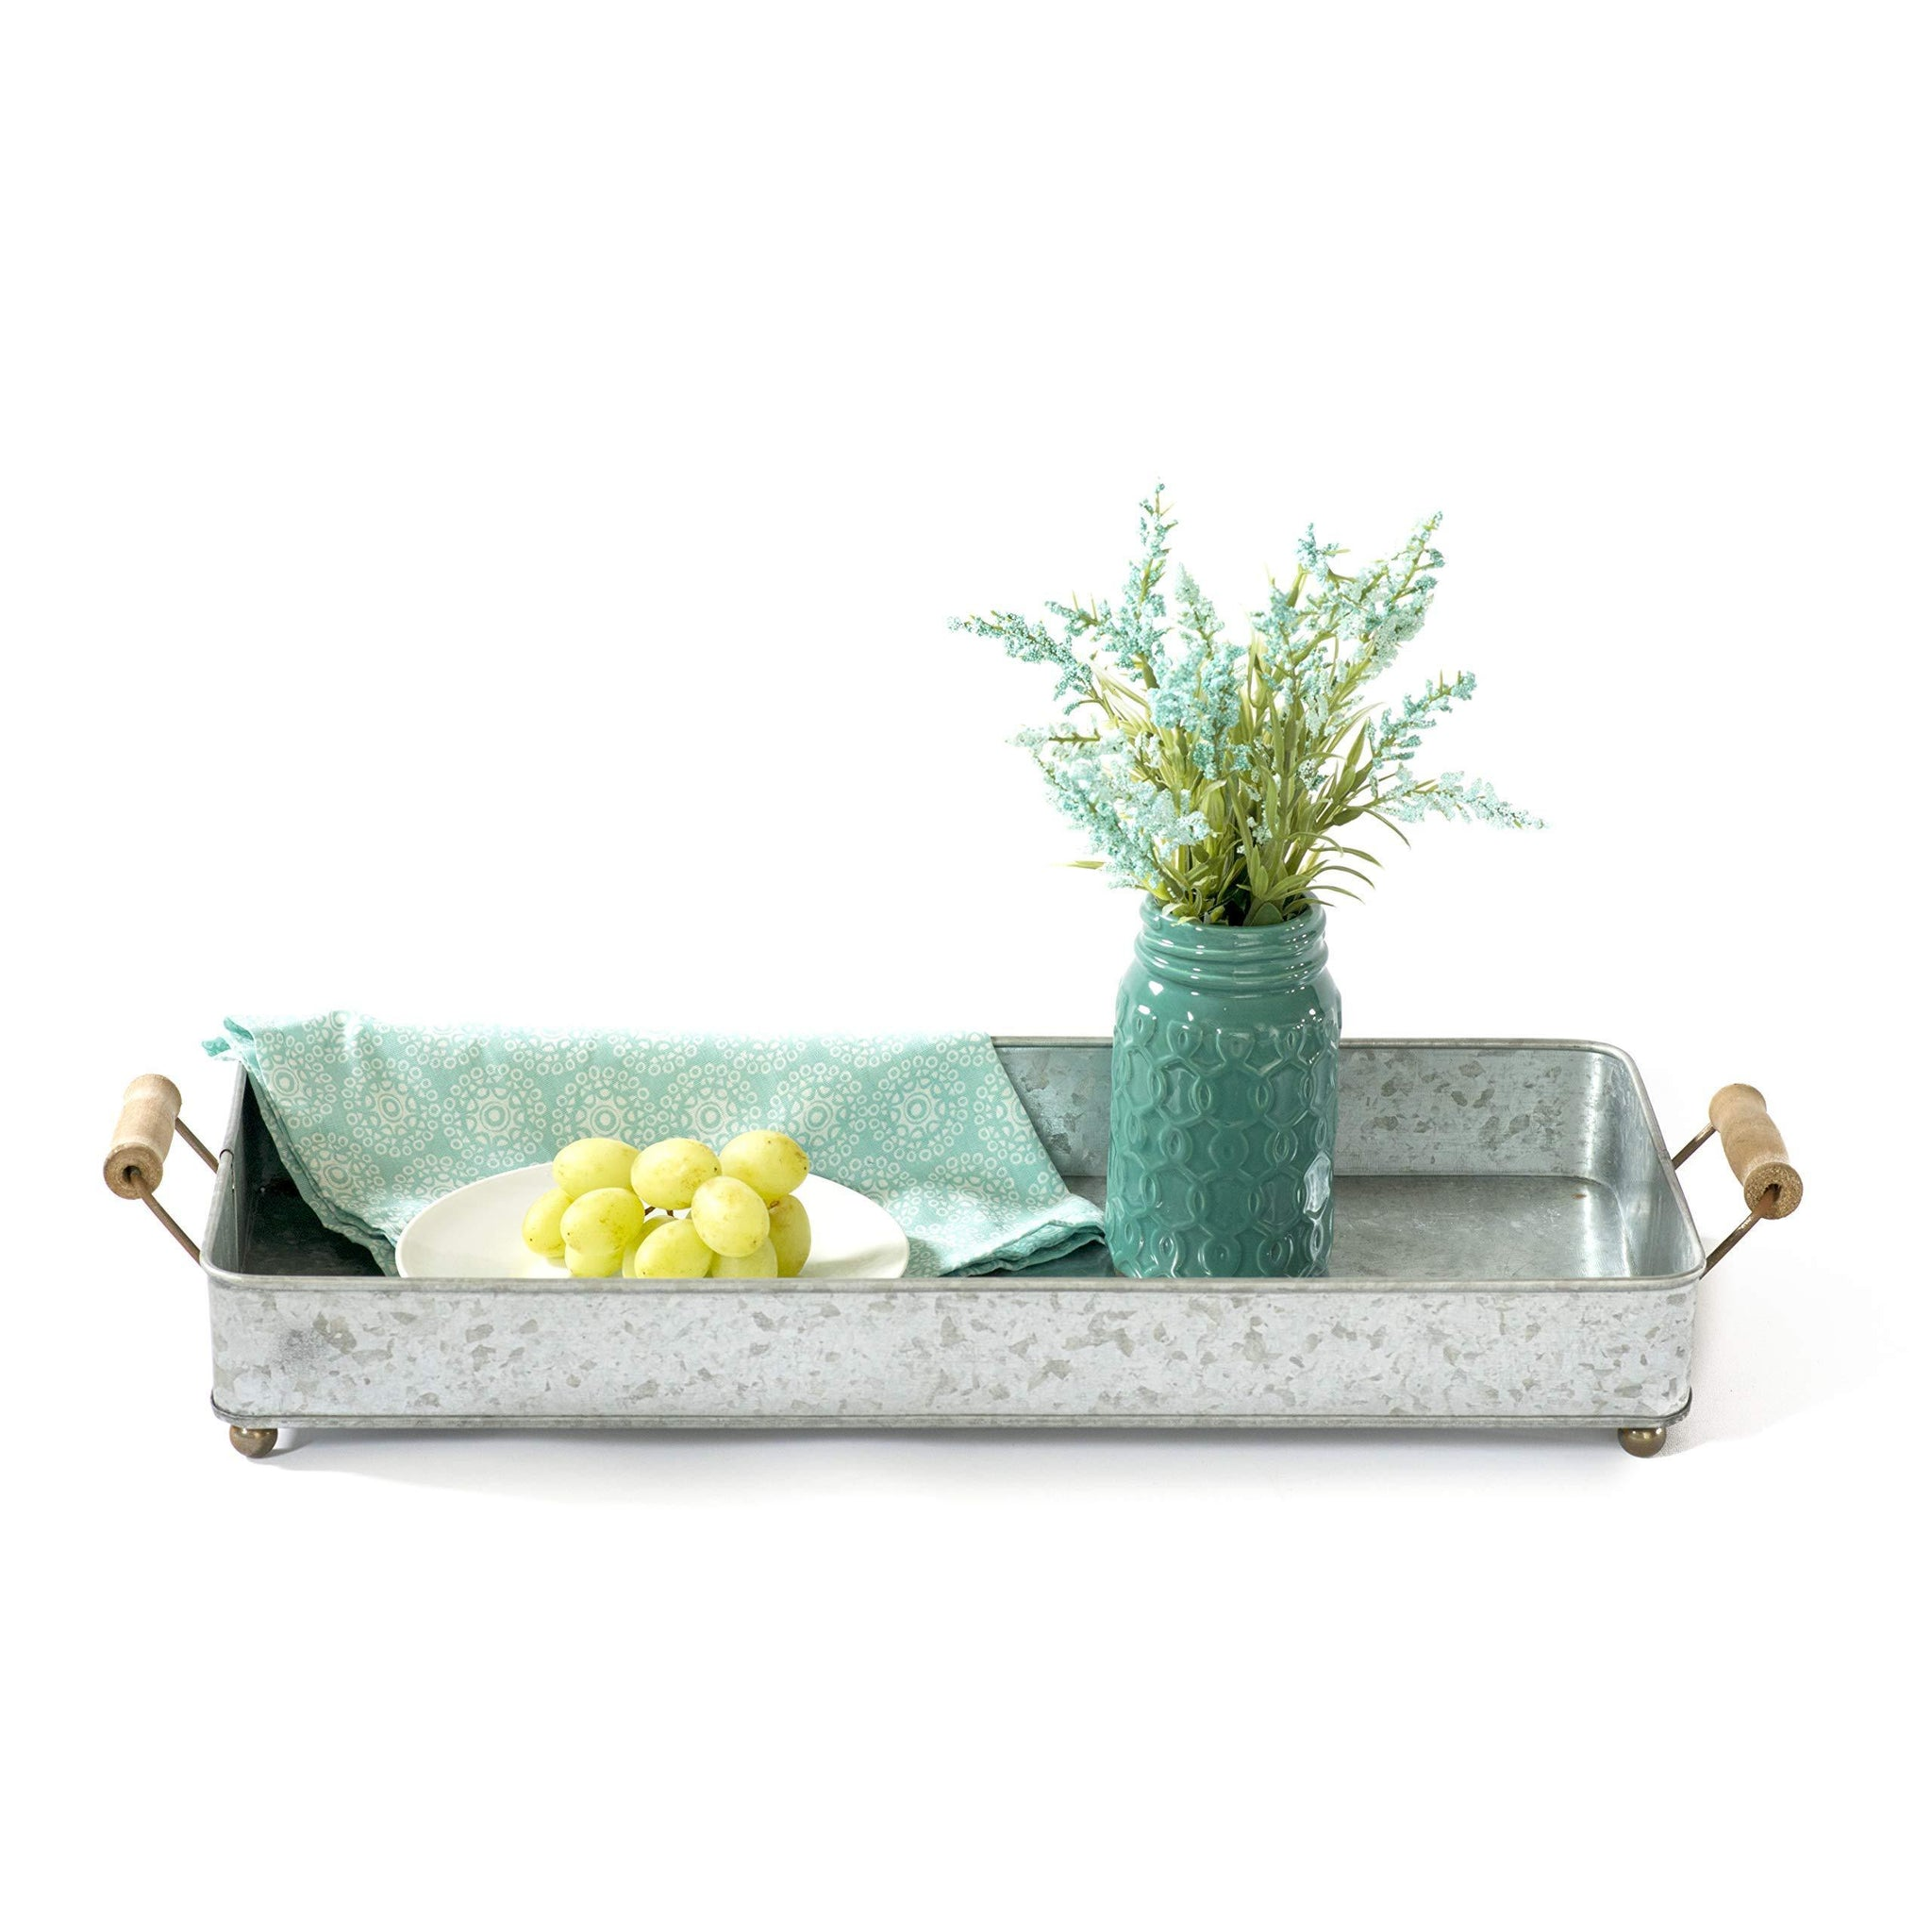 Rectangular Metal Tray Decorative Rustic Tray With Ball Feet Centerpiece Display Dinnerware Serving Dishes Serving Trays